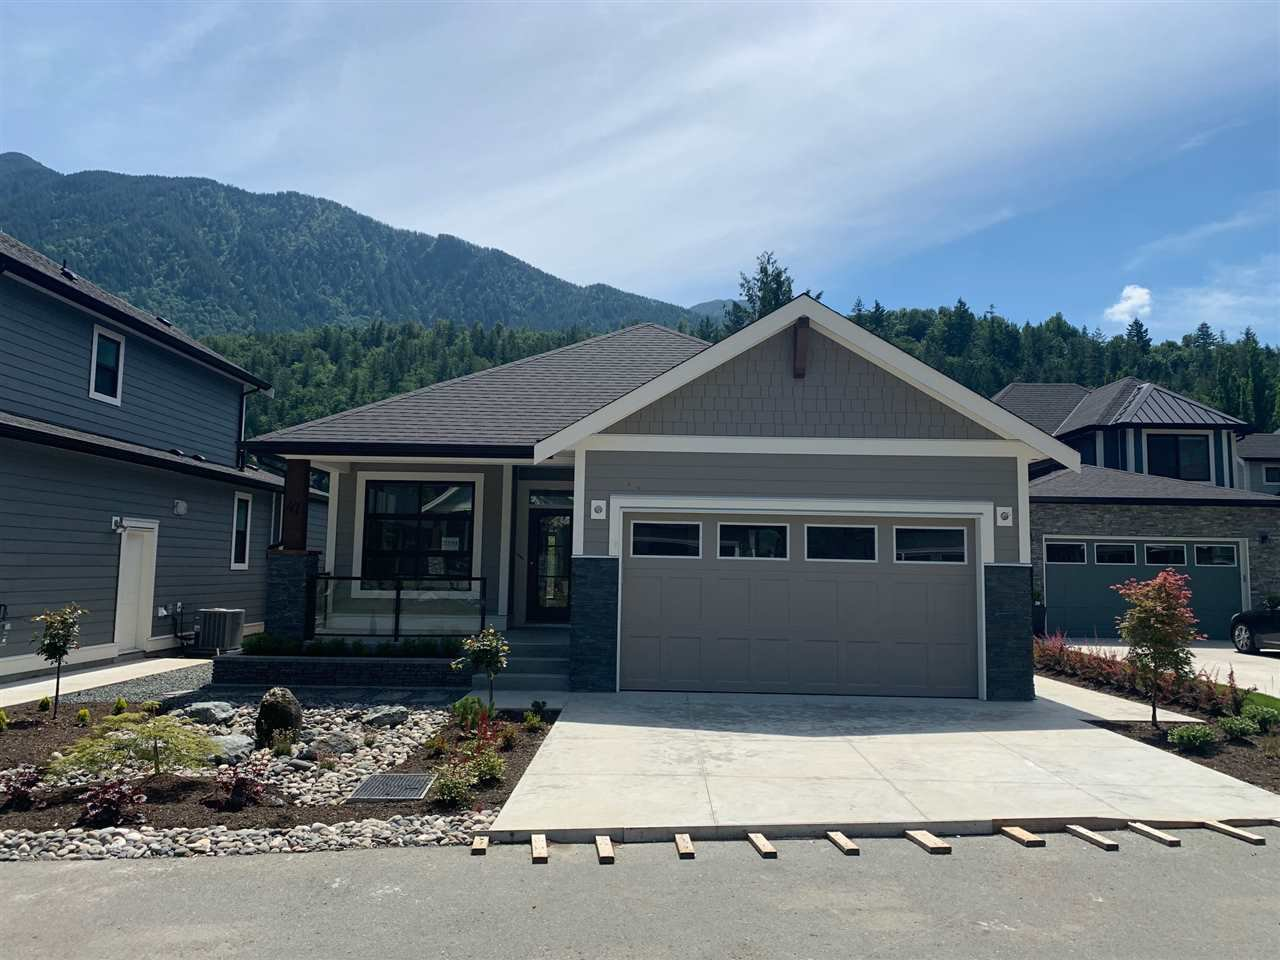 """Main Photo: 47 1885 COLUMBIA VALLEY Road in Cultus Lake: Lindell Beach House for sale in """"AQUADEL CROSSING"""" : MLS®# R2463620"""